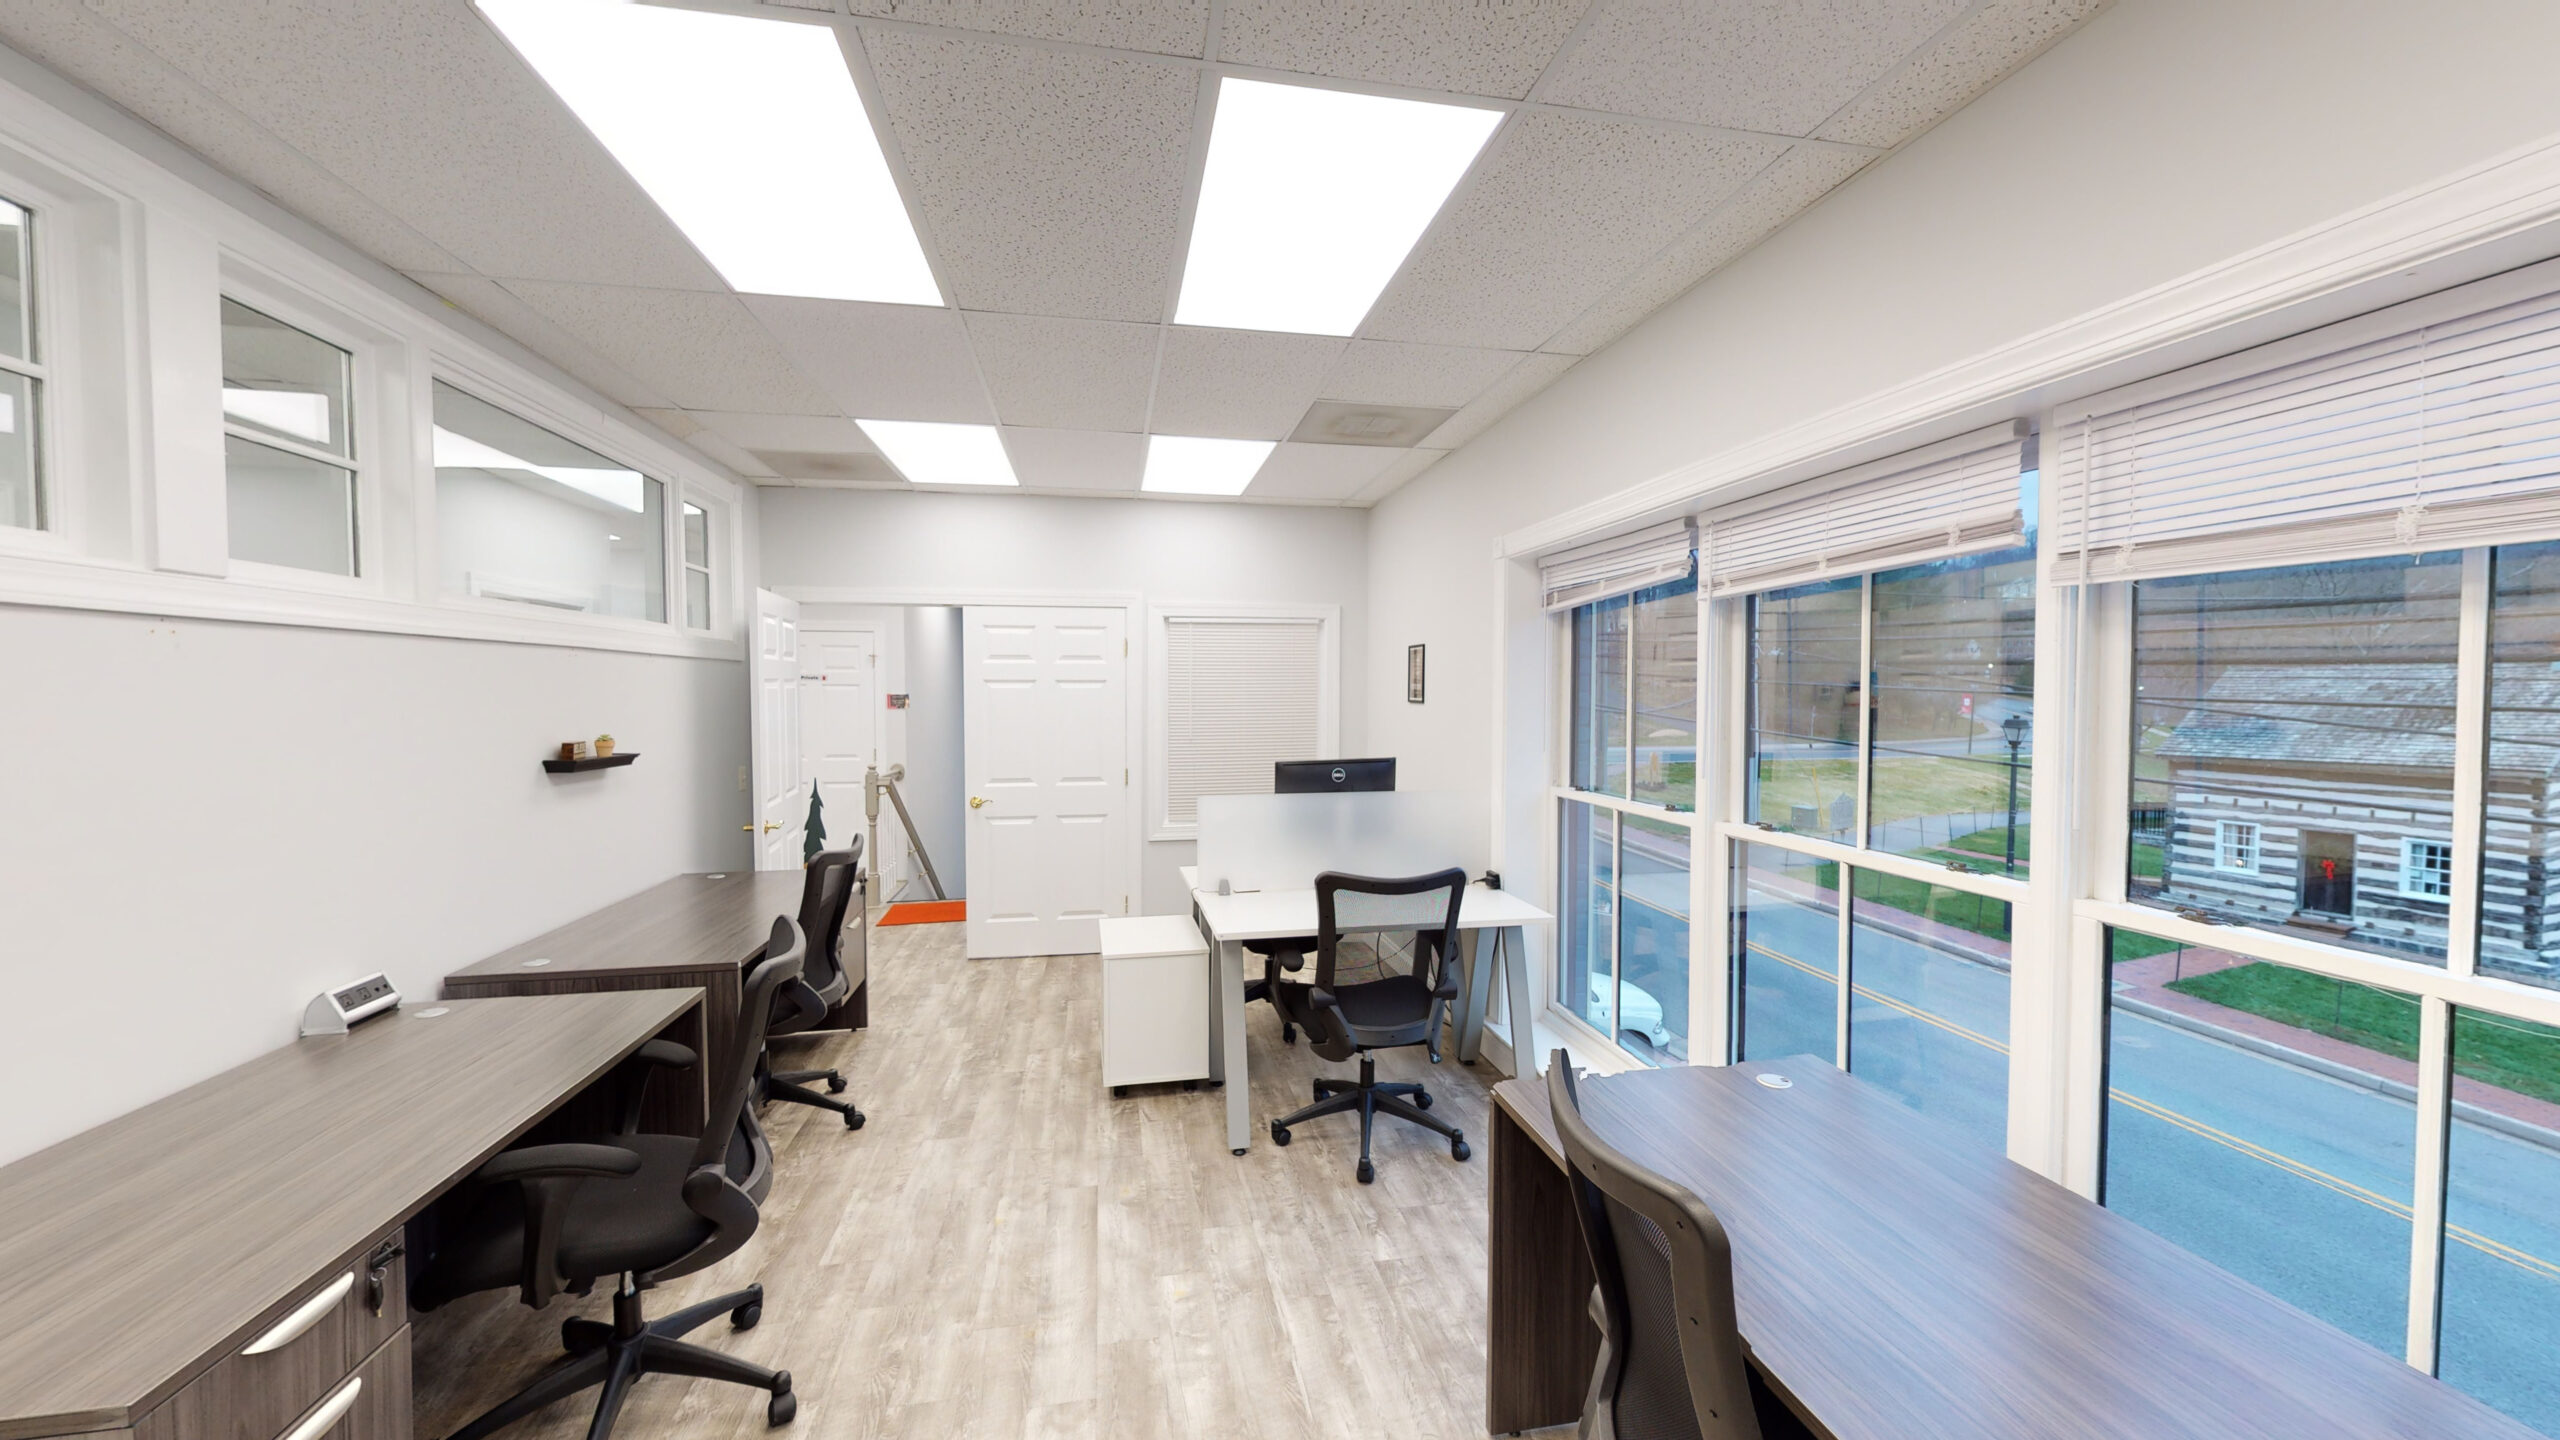 Ellicott City Virtual Office Space - Comfortable Commons Area